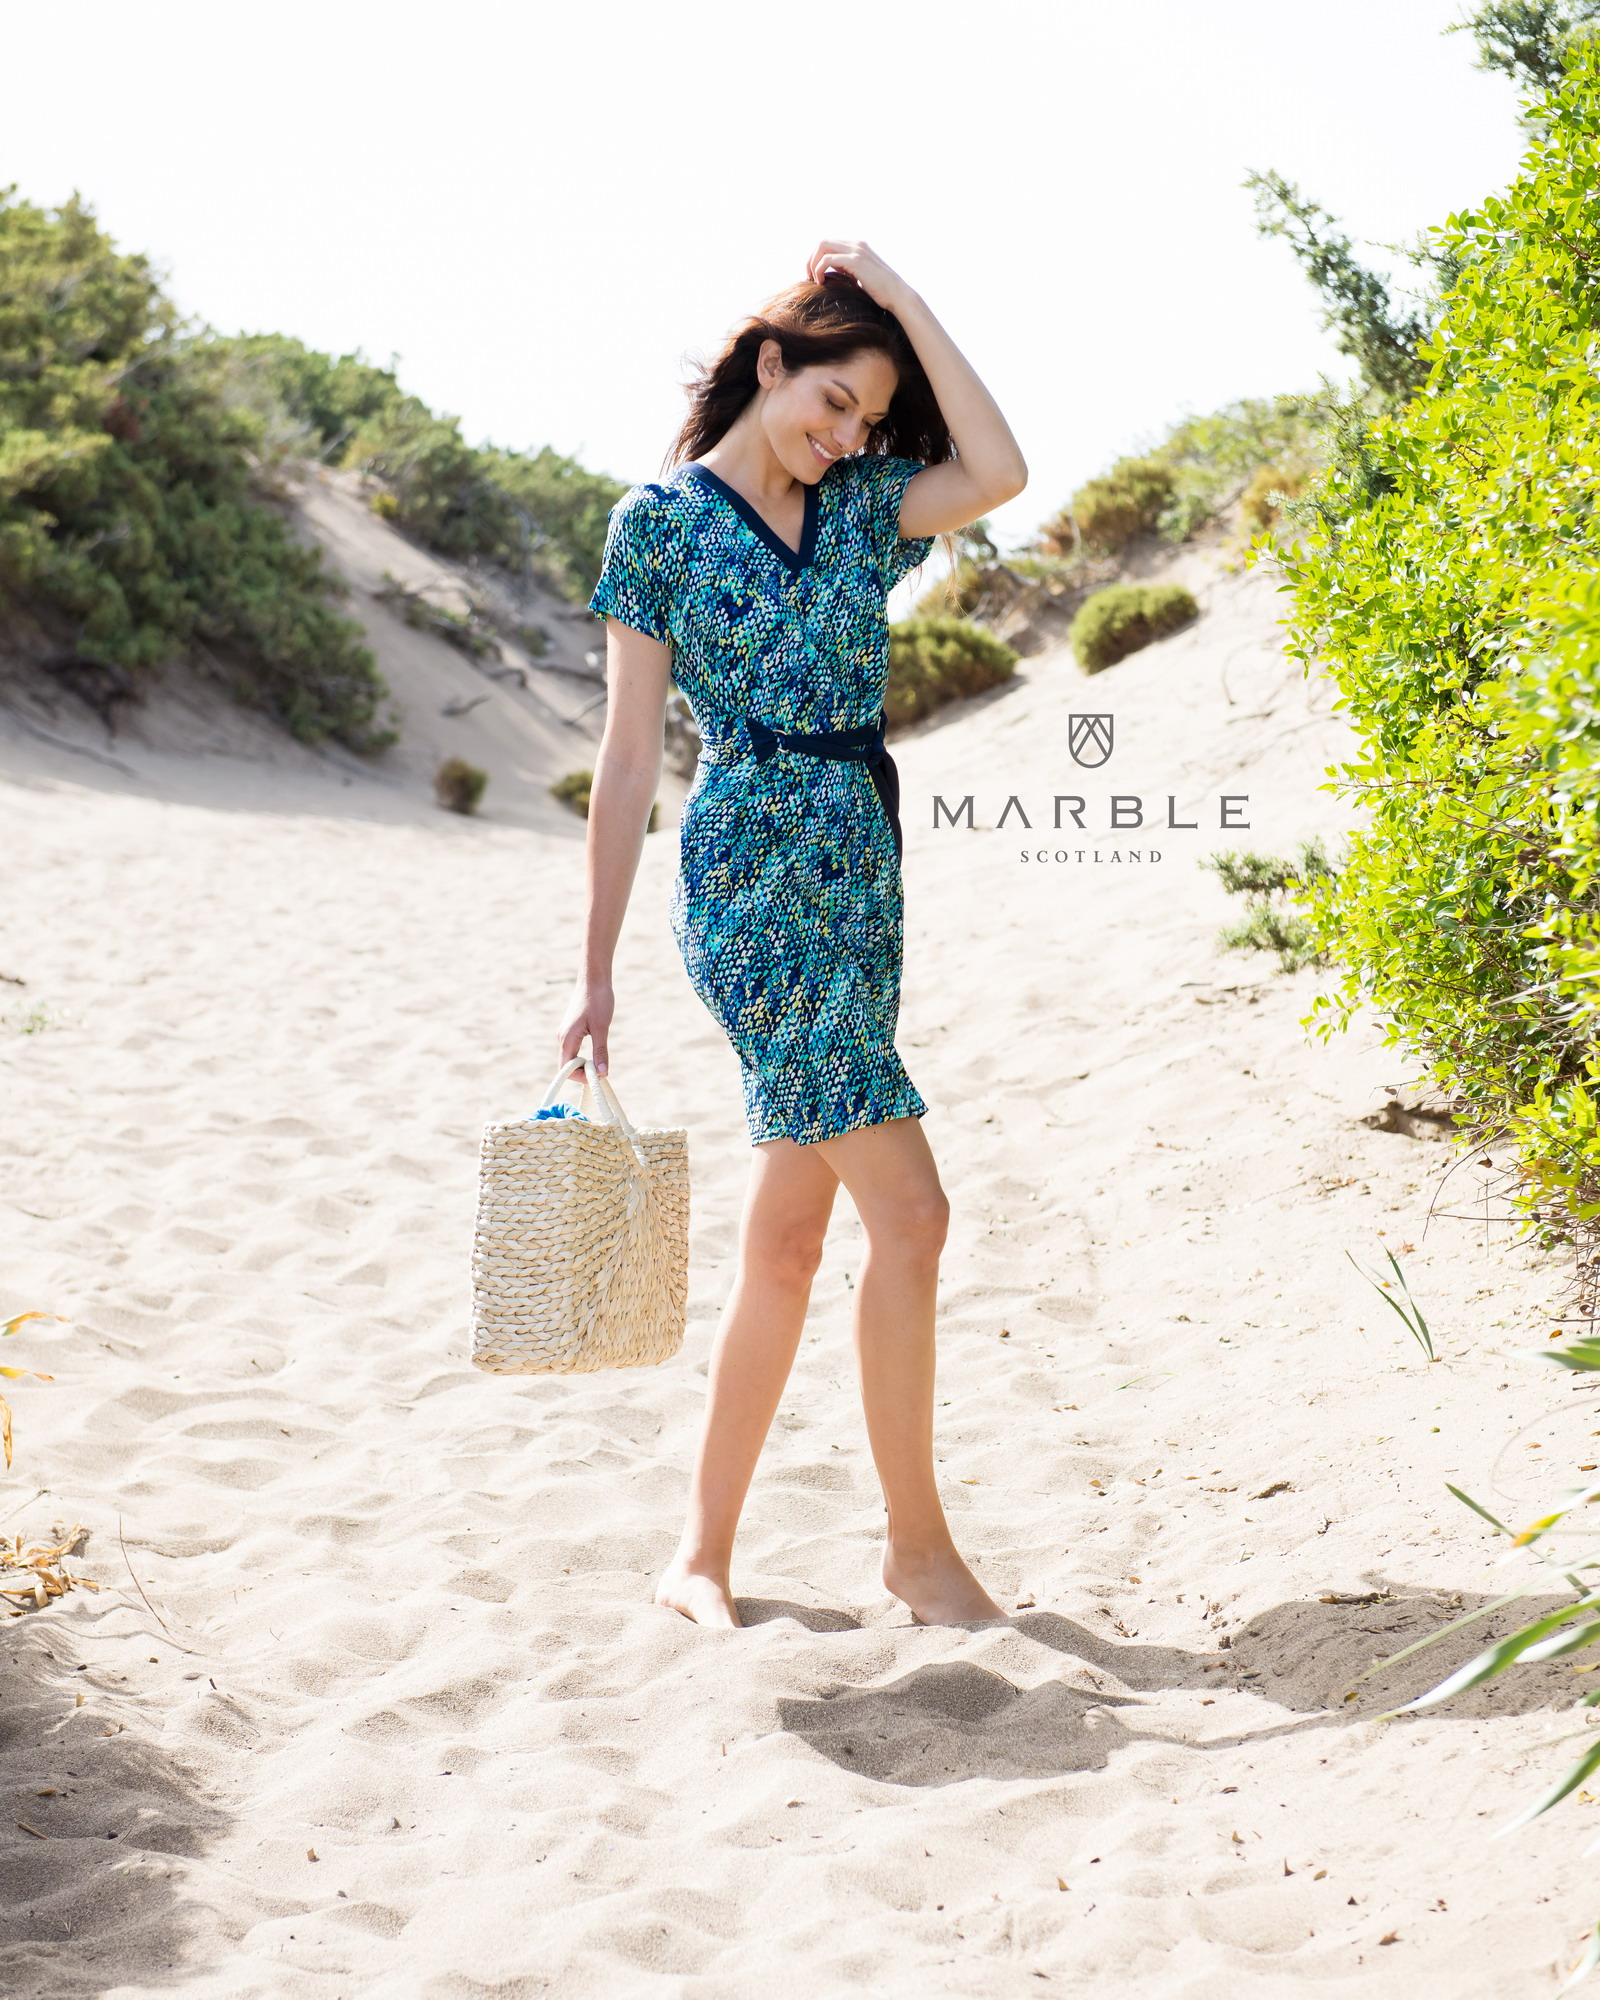 Marble Dress 5768 151